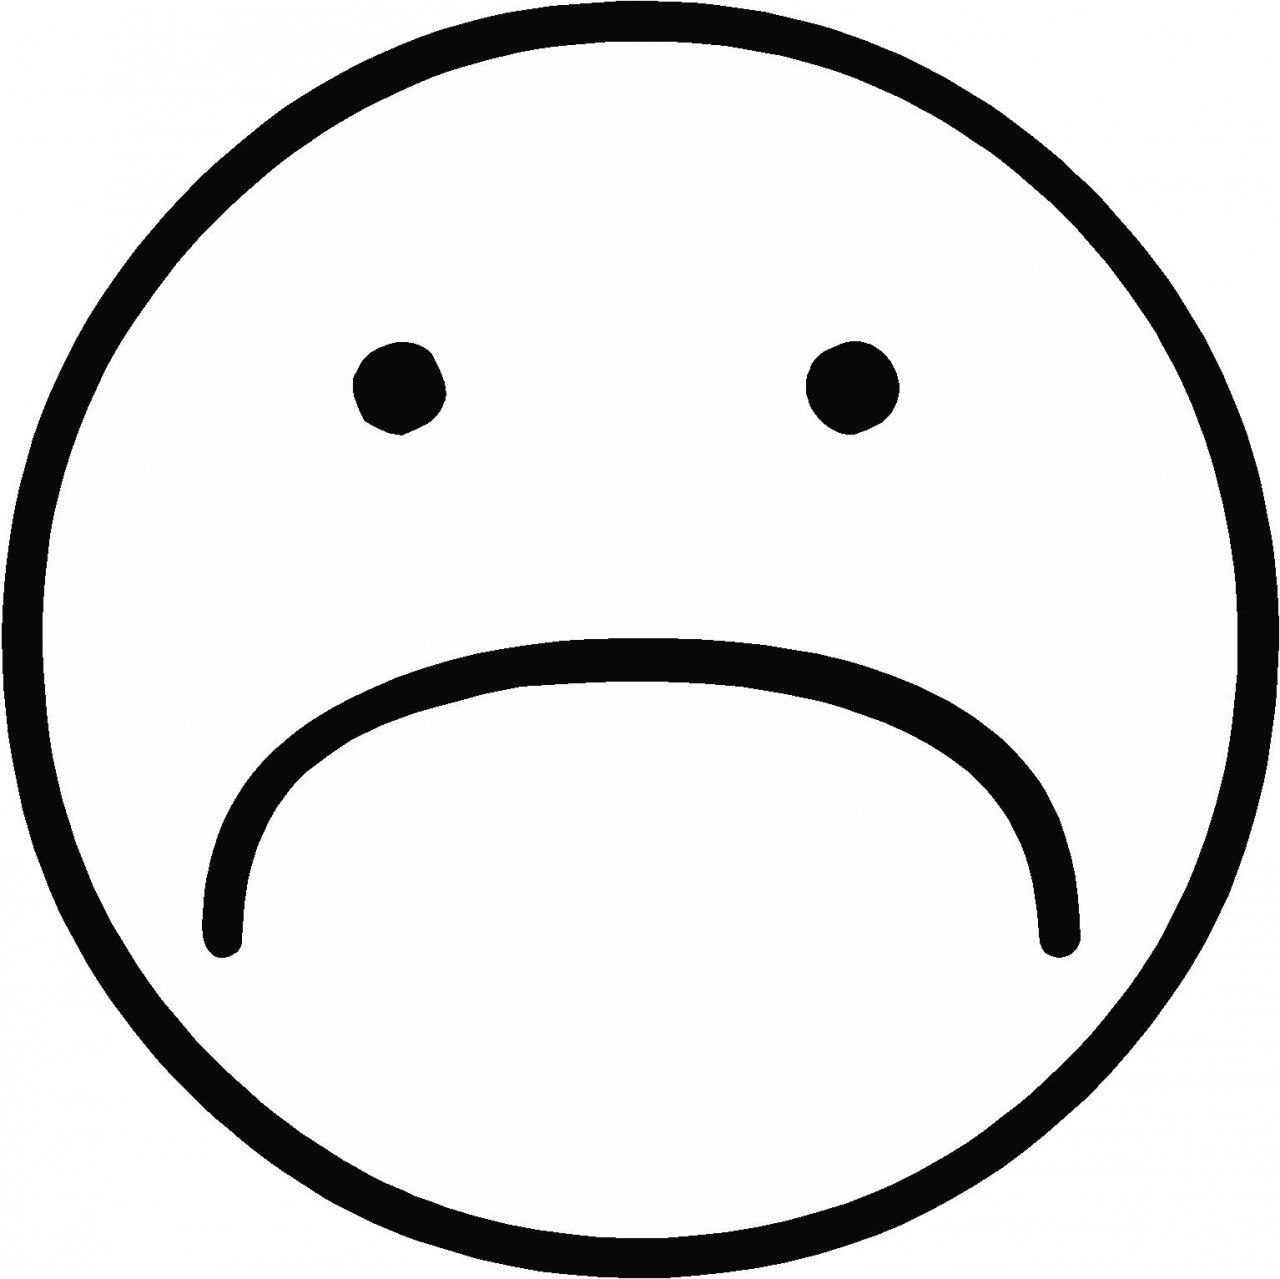 Sad Face Black And White | Clipart Panda - Free Clipart Images